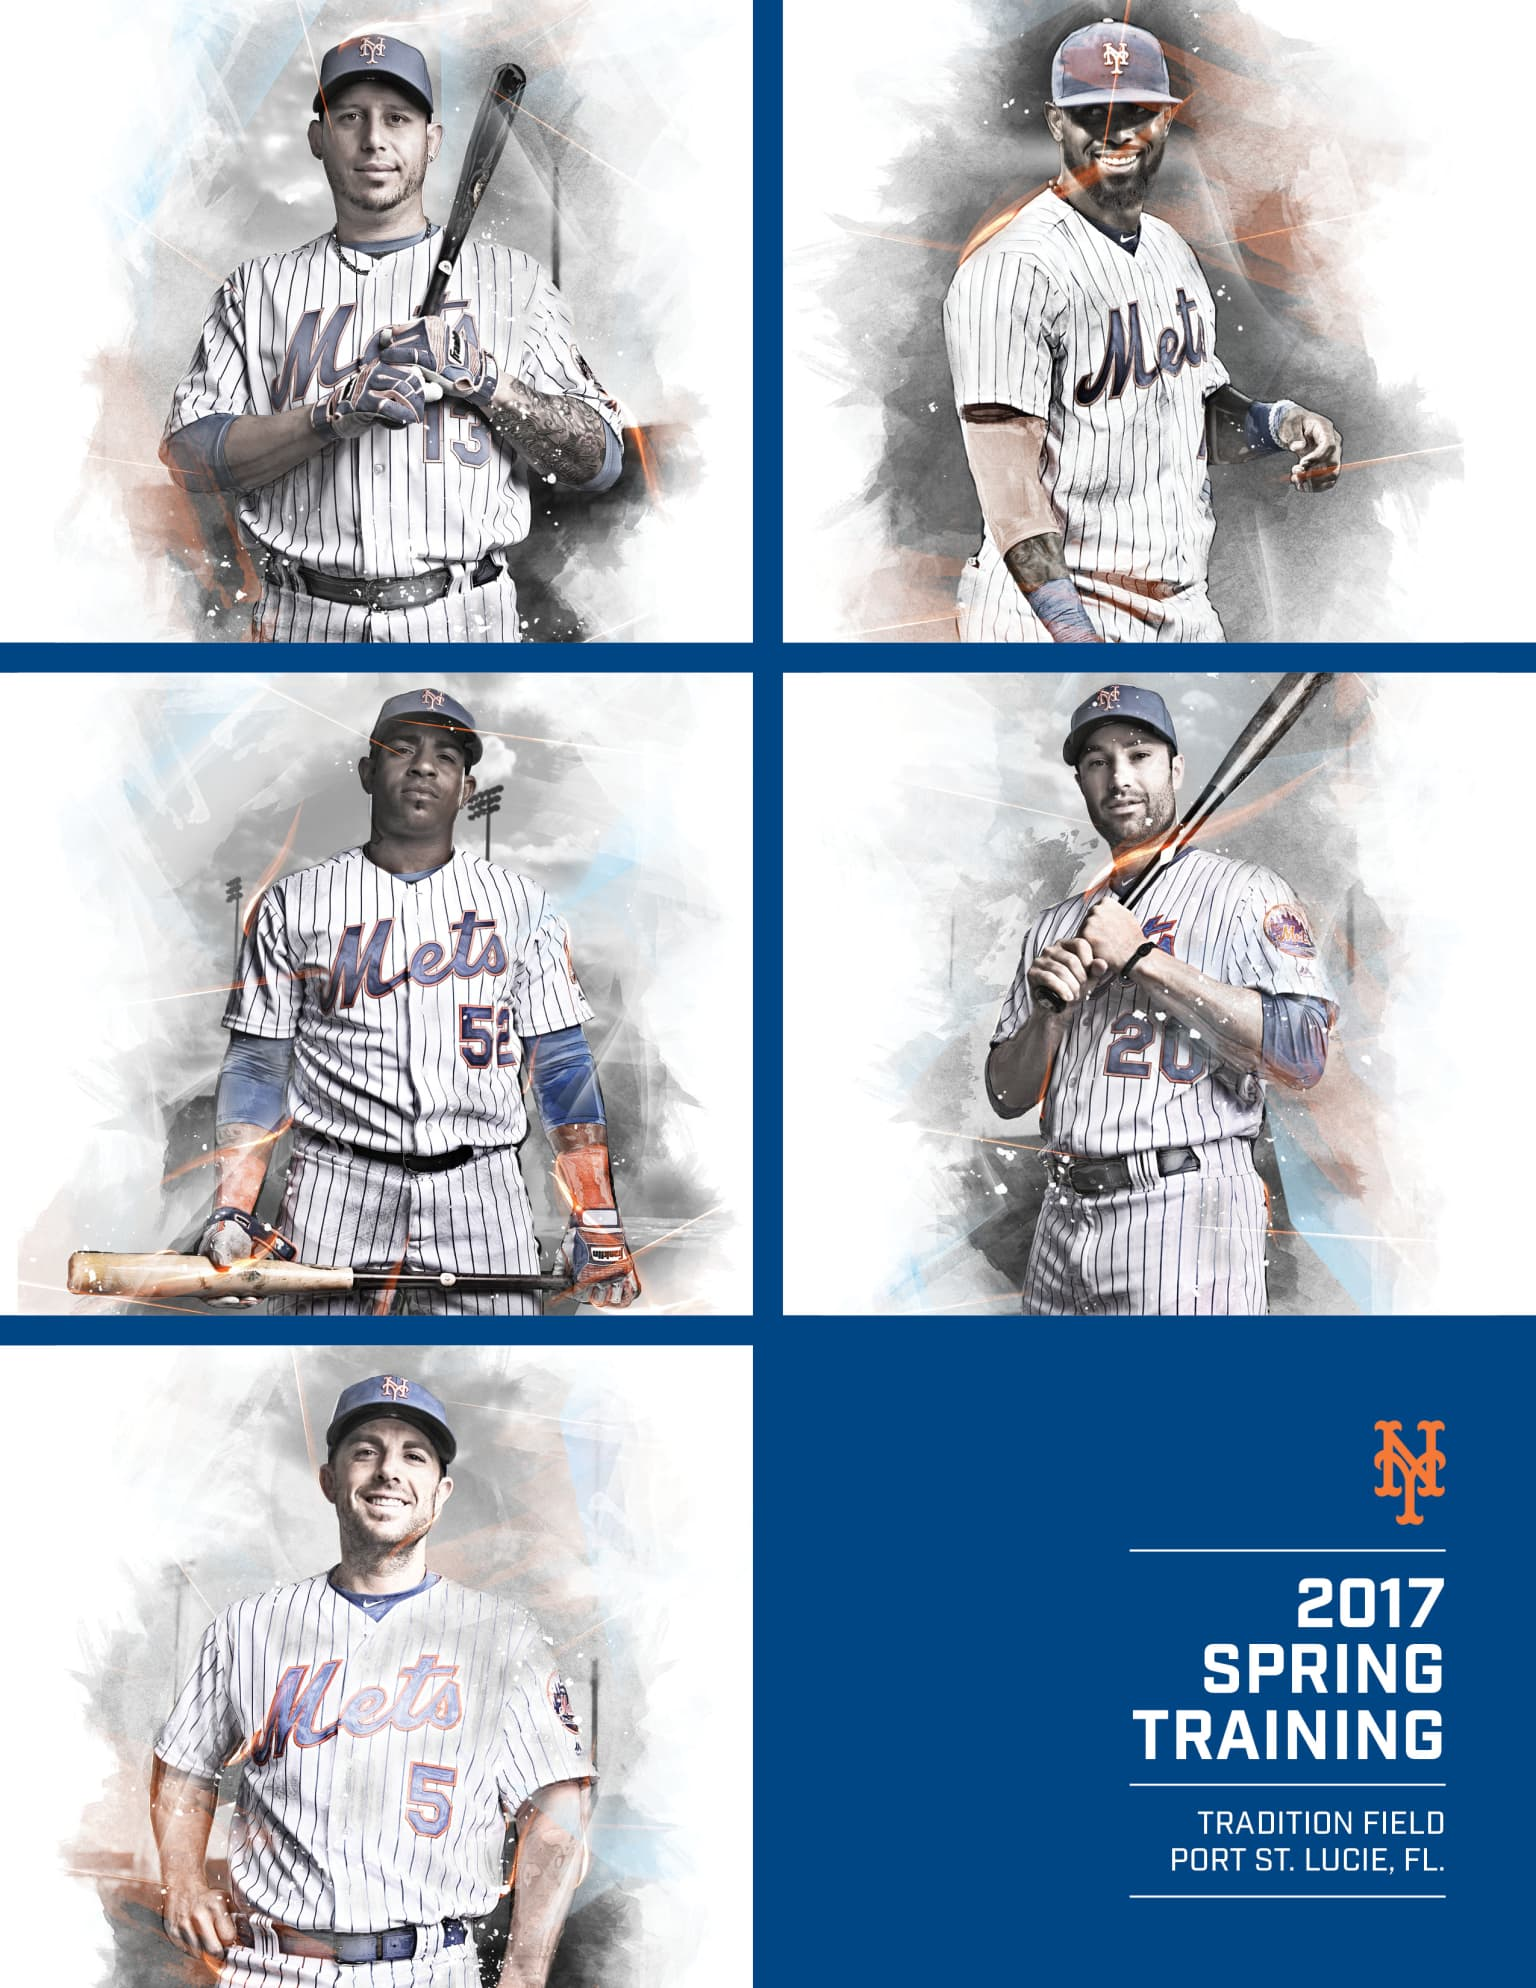 Spring Training Guide Covers